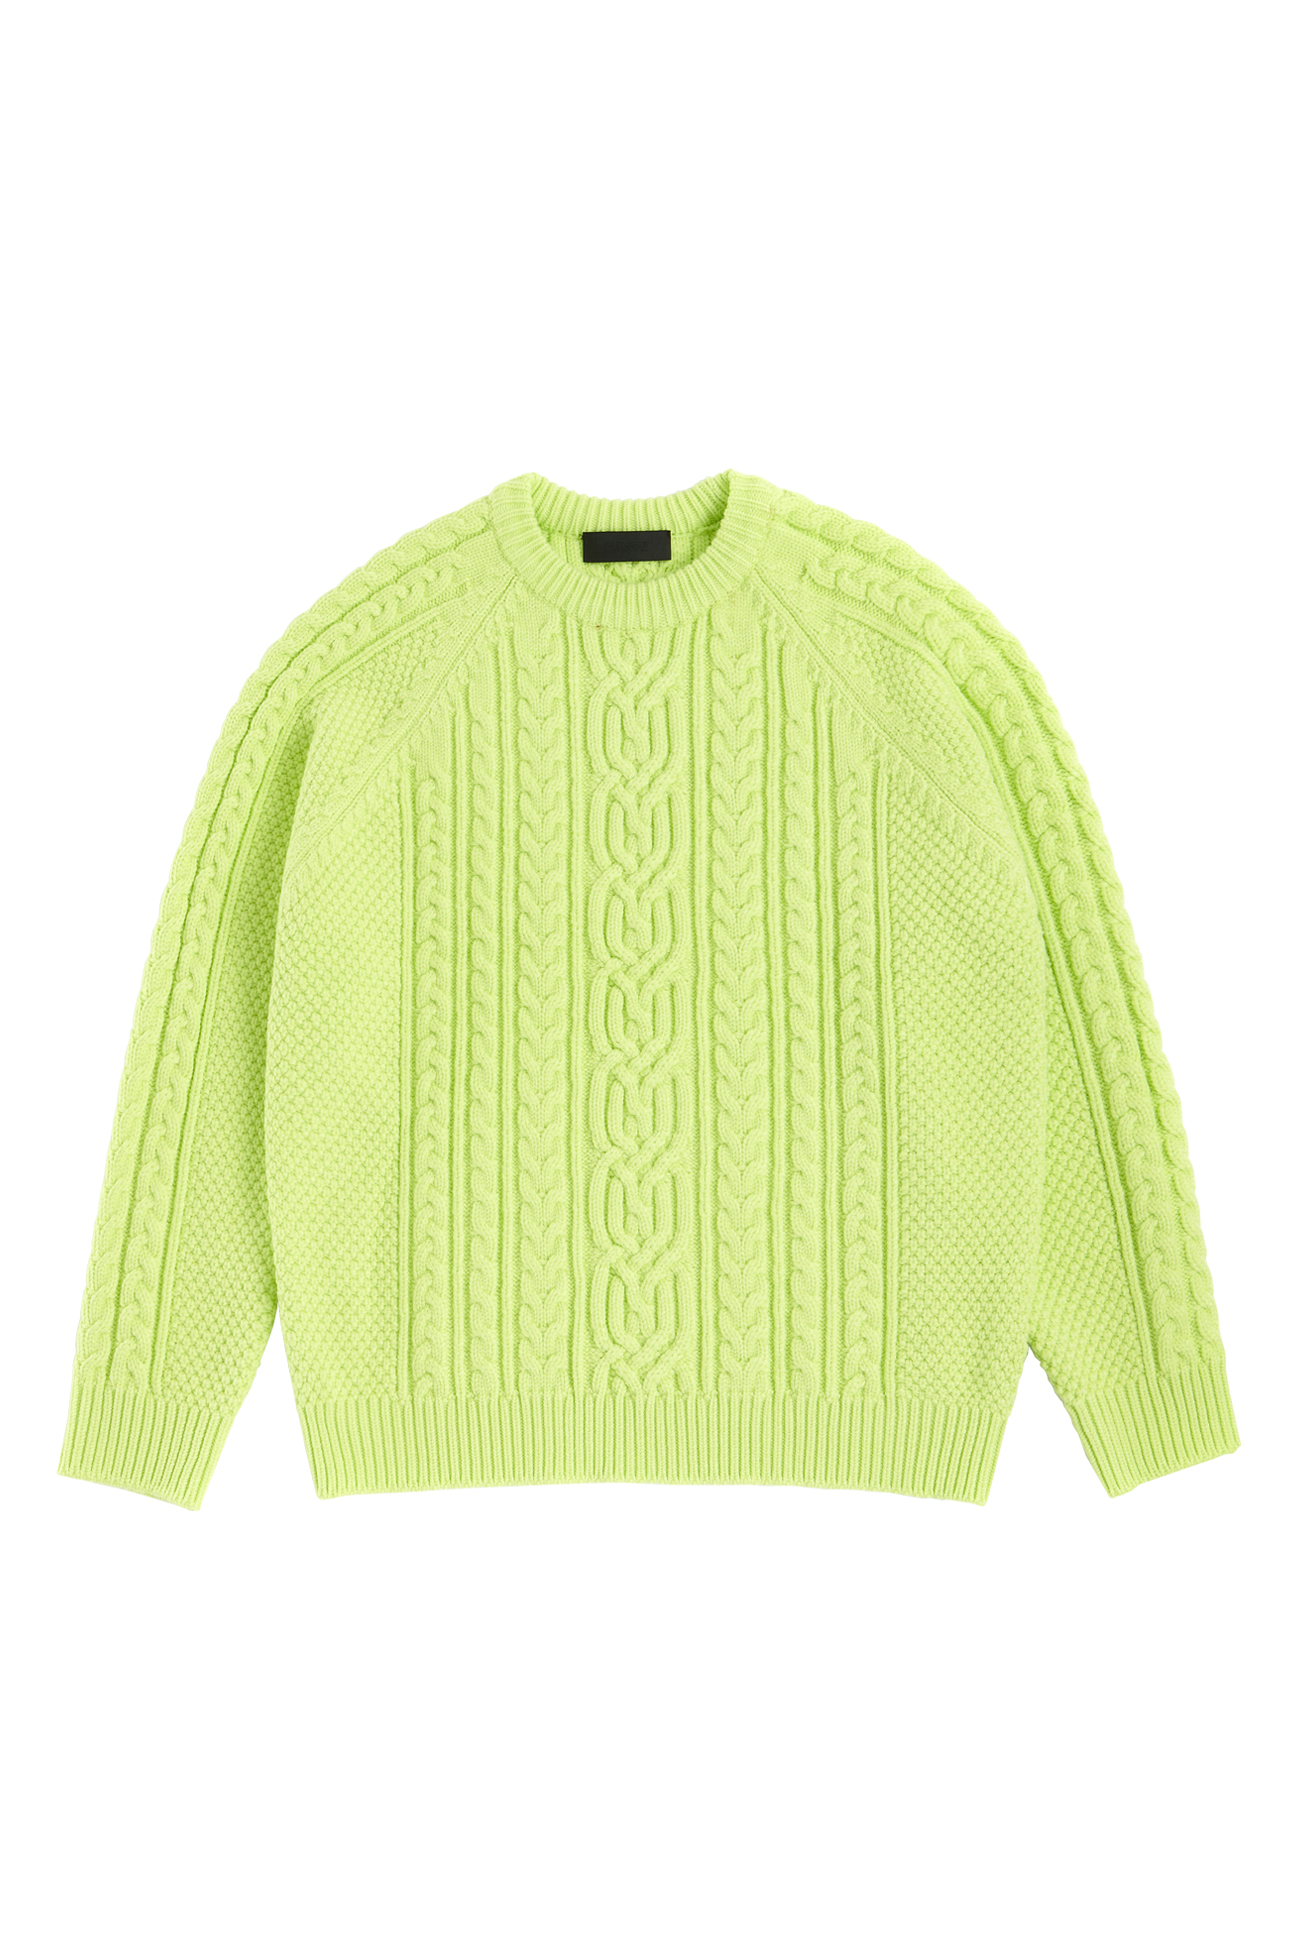 Twister sweater lemon